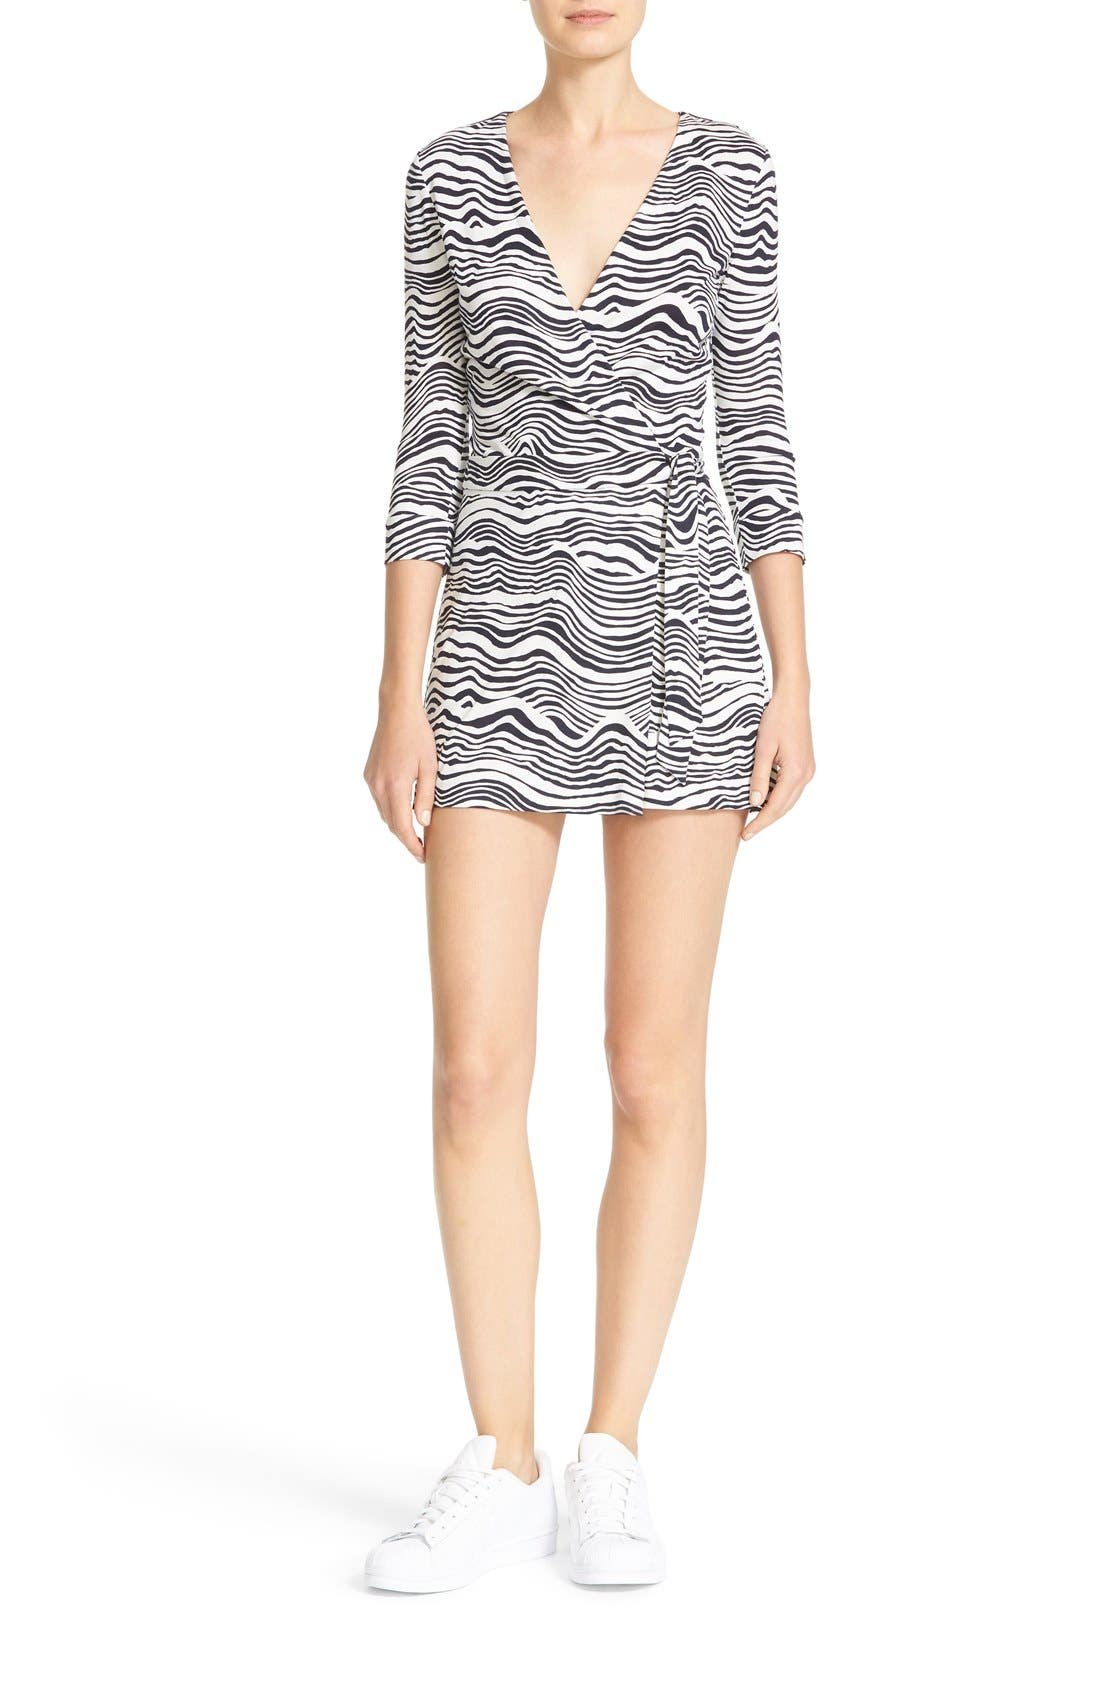 Alternate Image 1 Selected - Diane von Furstenberg Celeste Silk Romper